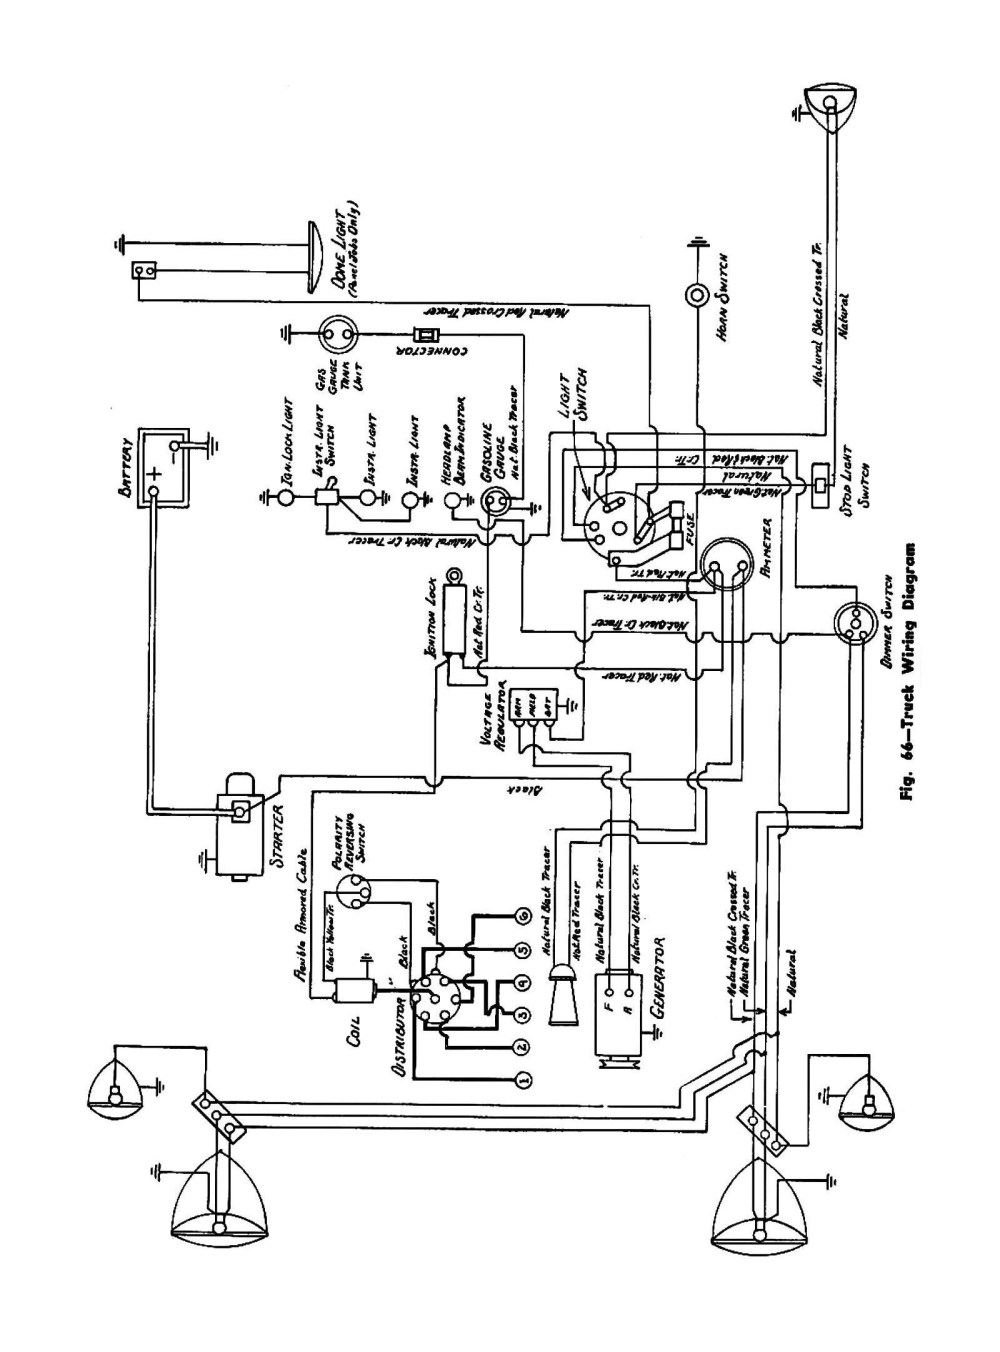 medium resolution of 1977 chevy truck wiring diagram images gallery